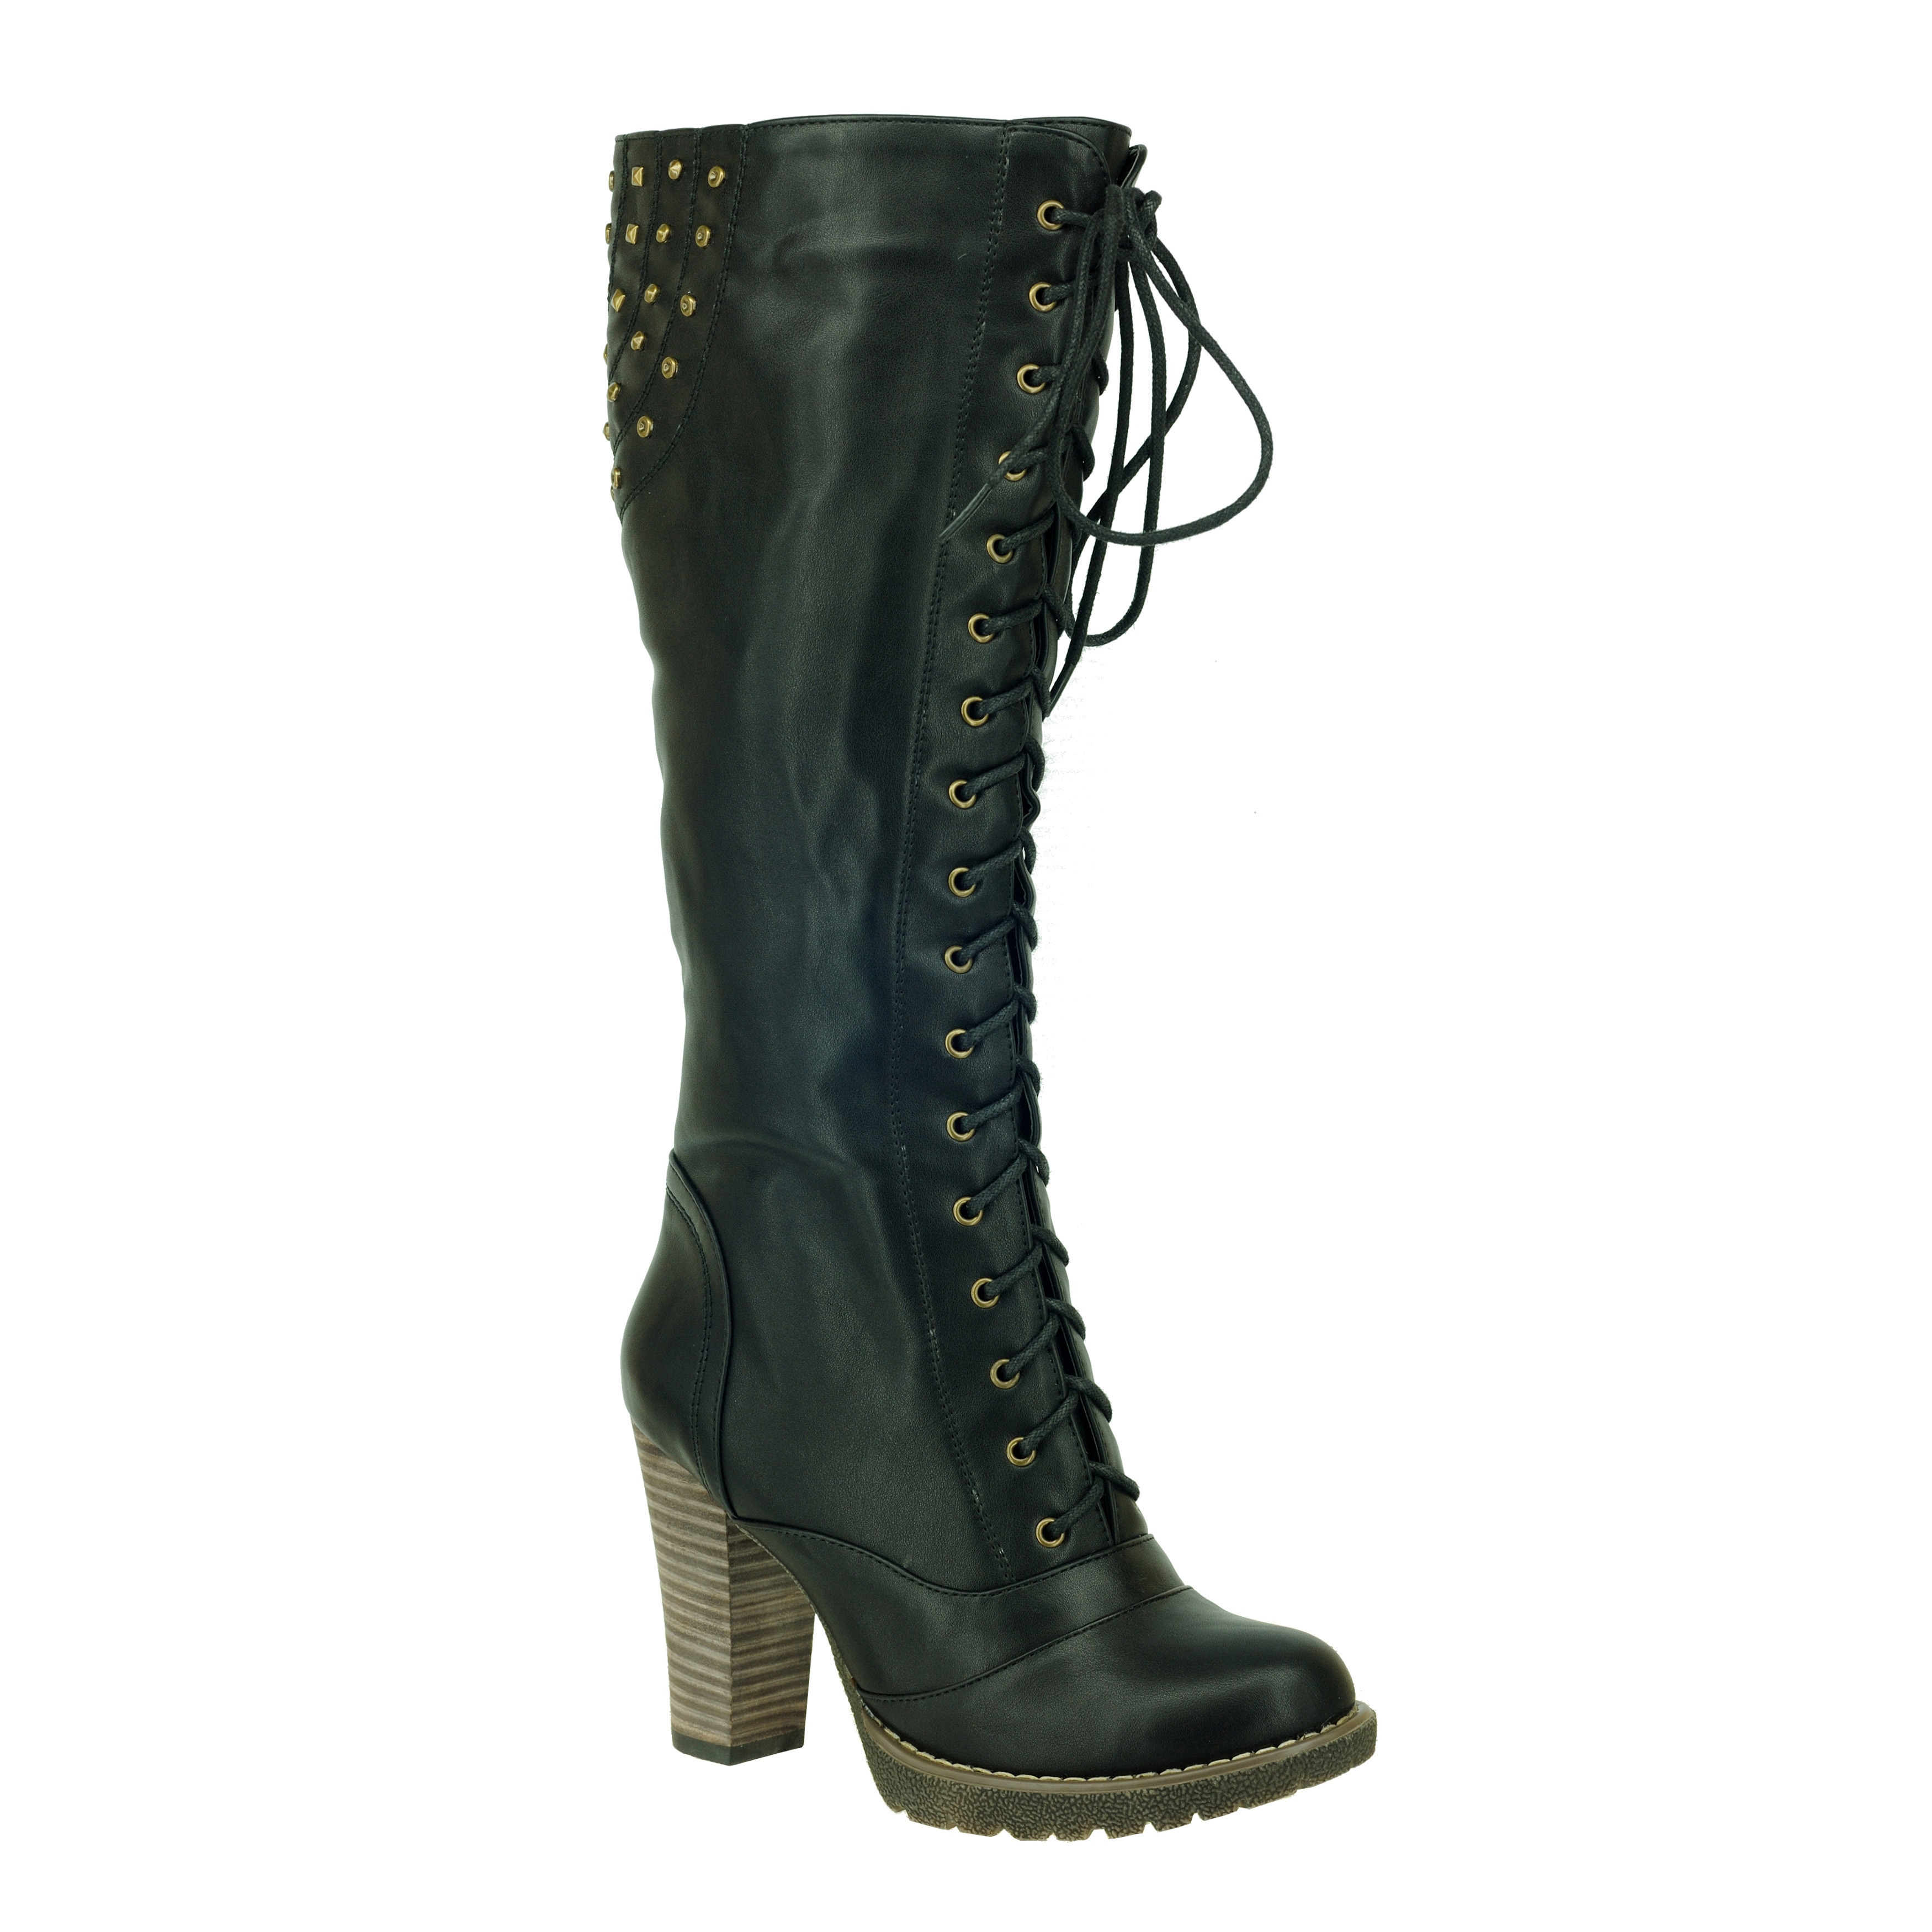 74bb0b890a7b9 Shop DimeCity Women s  Darla  Lace-up Riding Boots - Free Shipping Today -  Overstock - 7869980